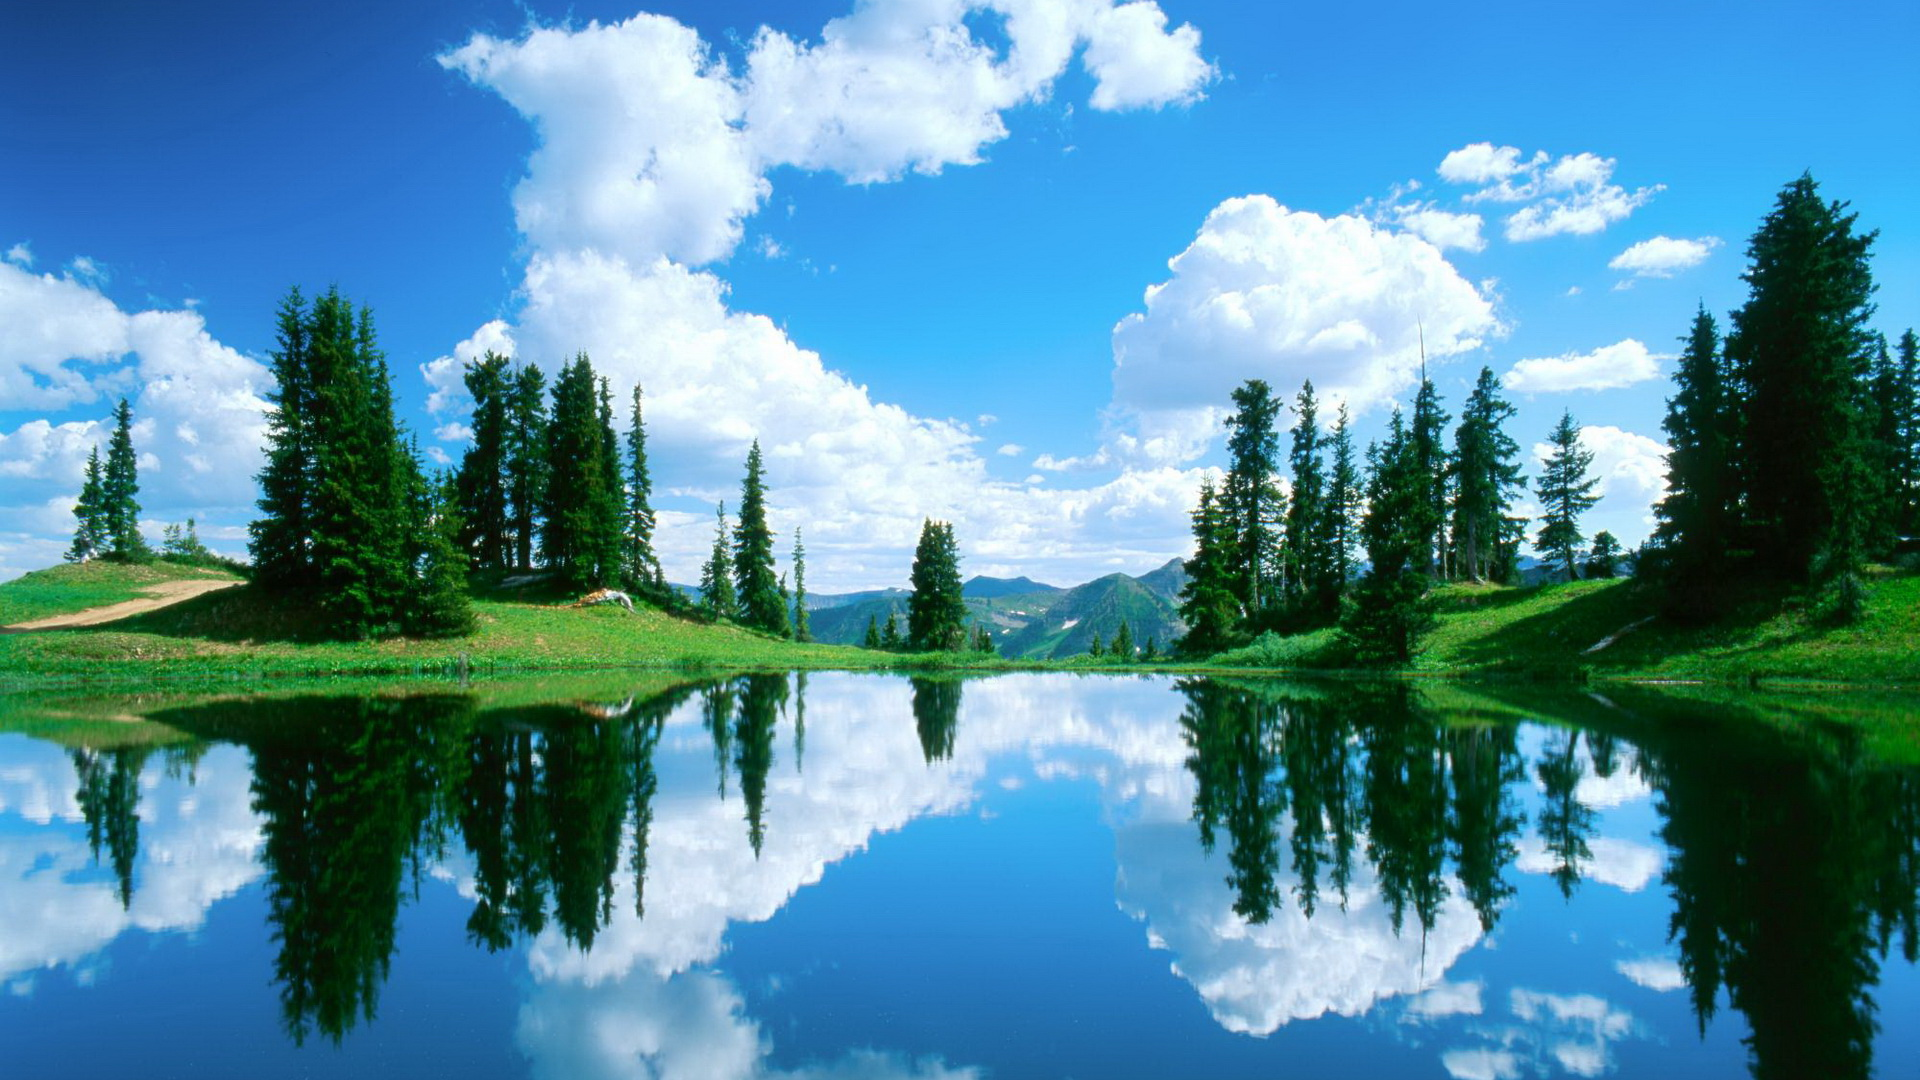 click to free download the wallpaper--Free Download Natural Scenery Picture - The Clear Blue Sea Under the Blue Sky, Green Trees and Grass Are Reflected 1920X1080 free wallpaper download